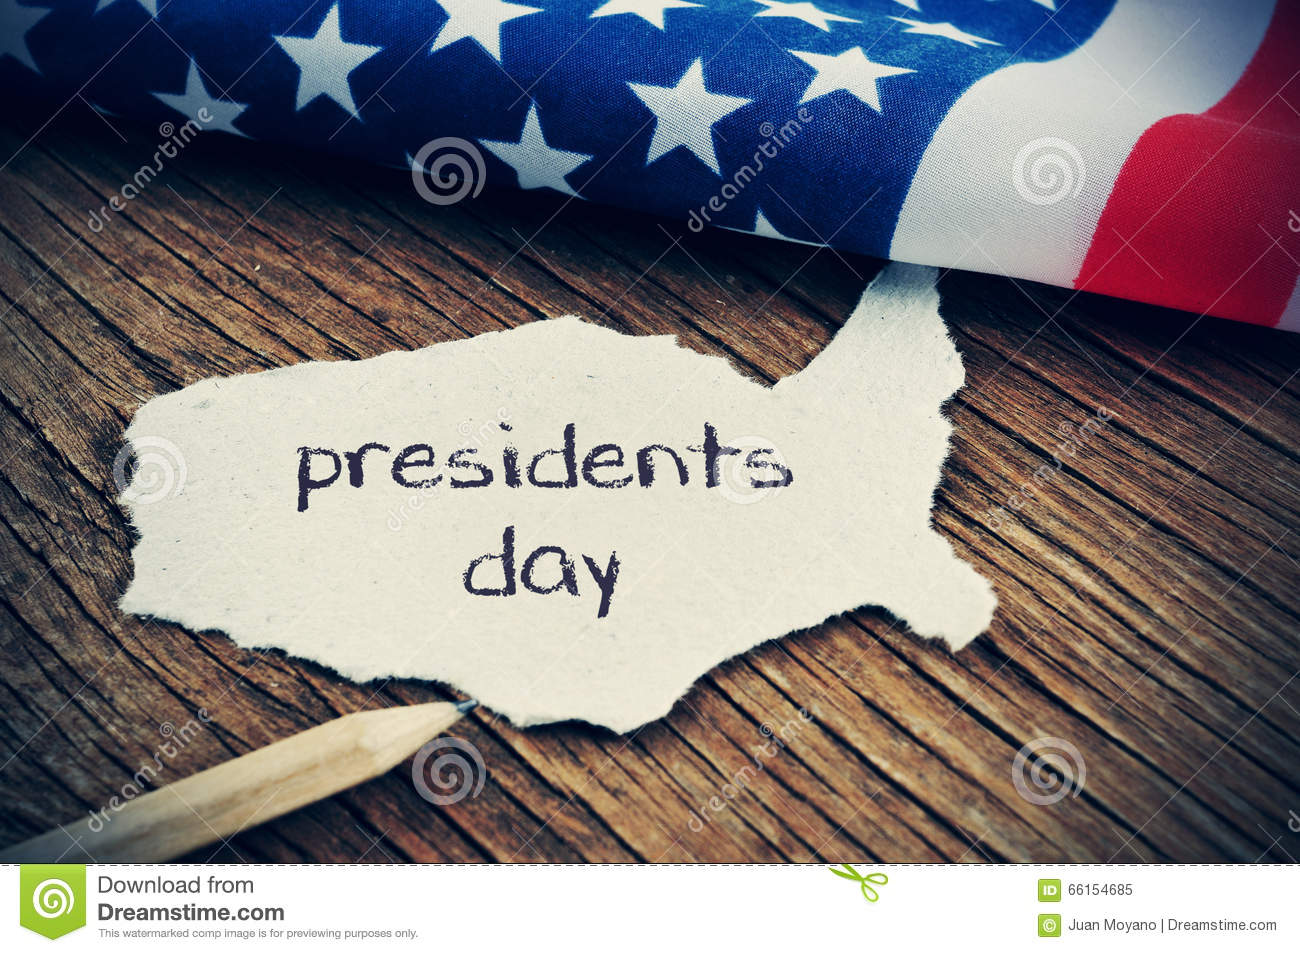 The flag of the US and the text presidents day, vignetted